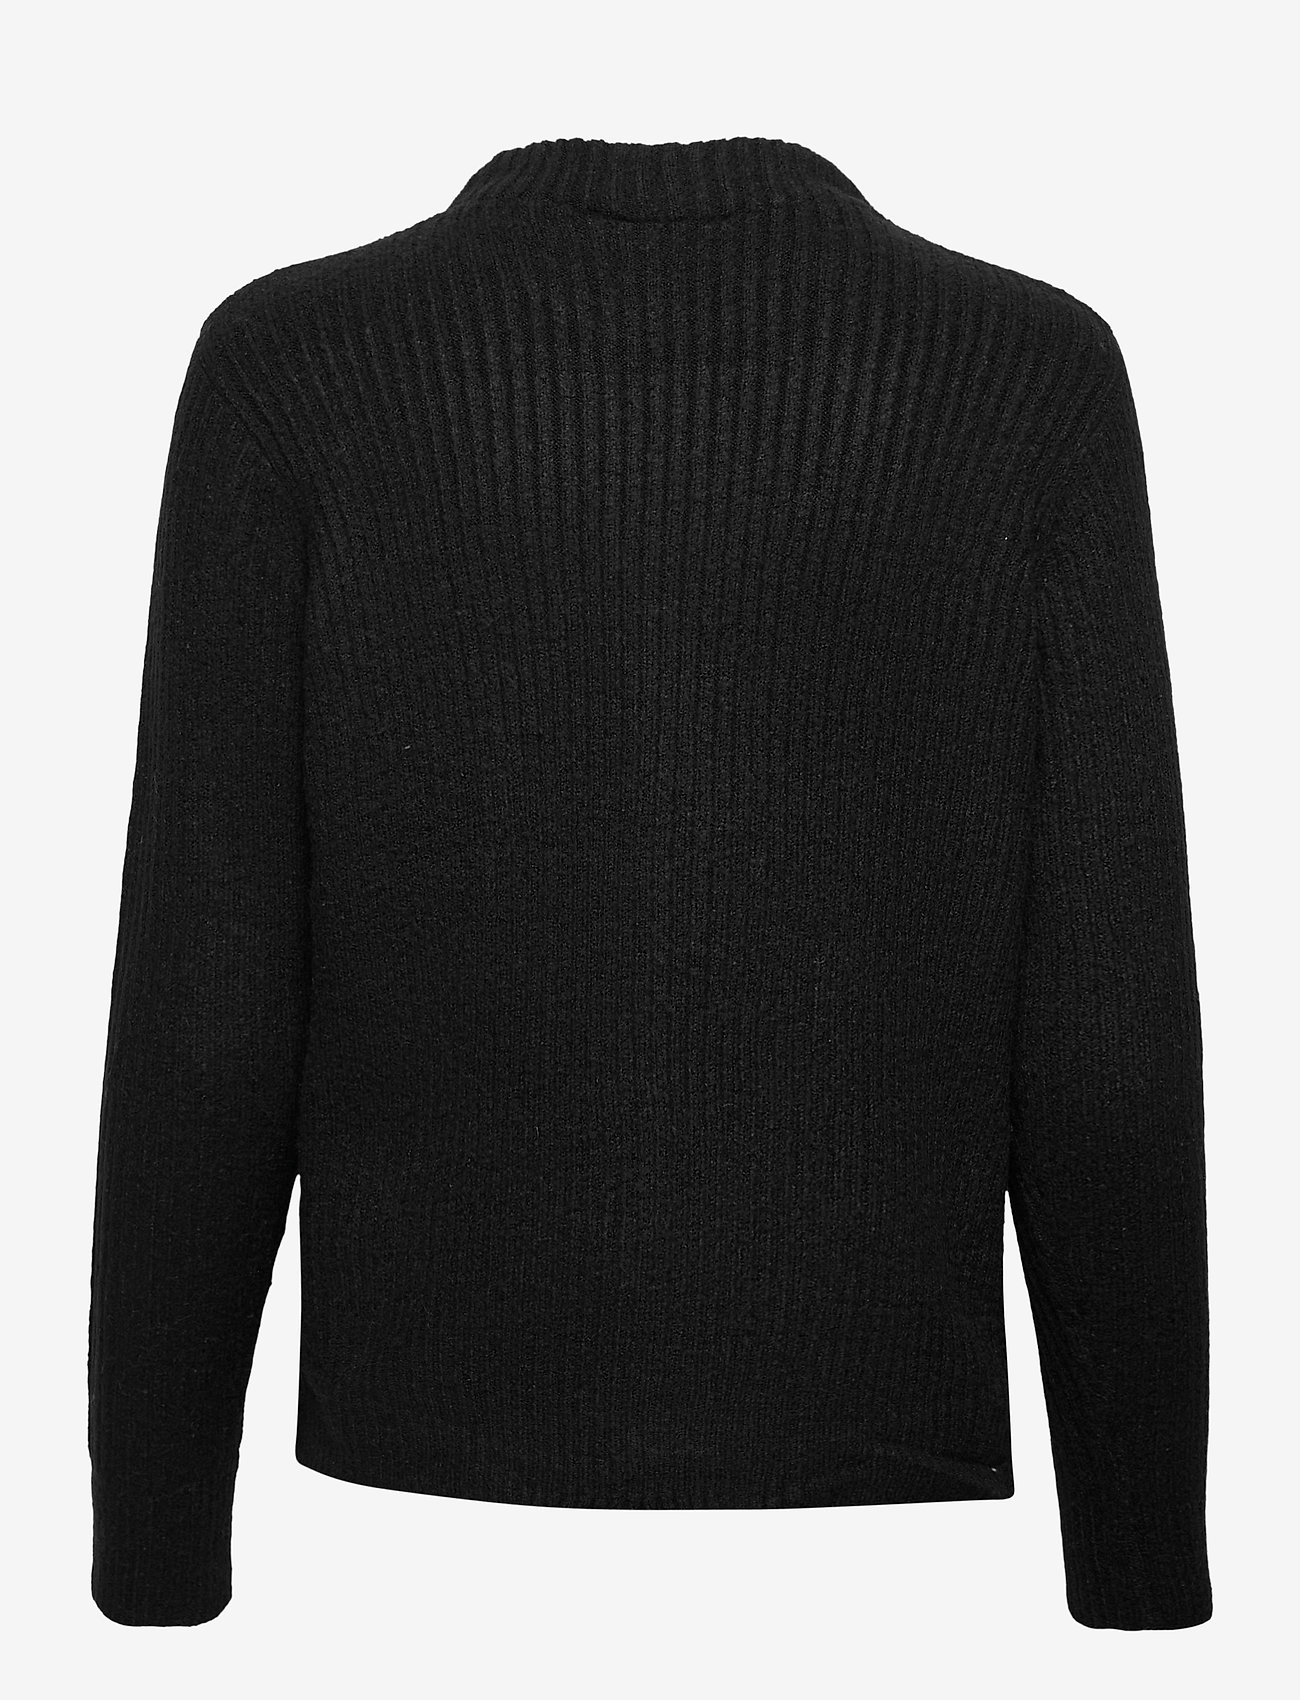 b.young - BYNORA JUMPER 2 - - jumpers - black - 1